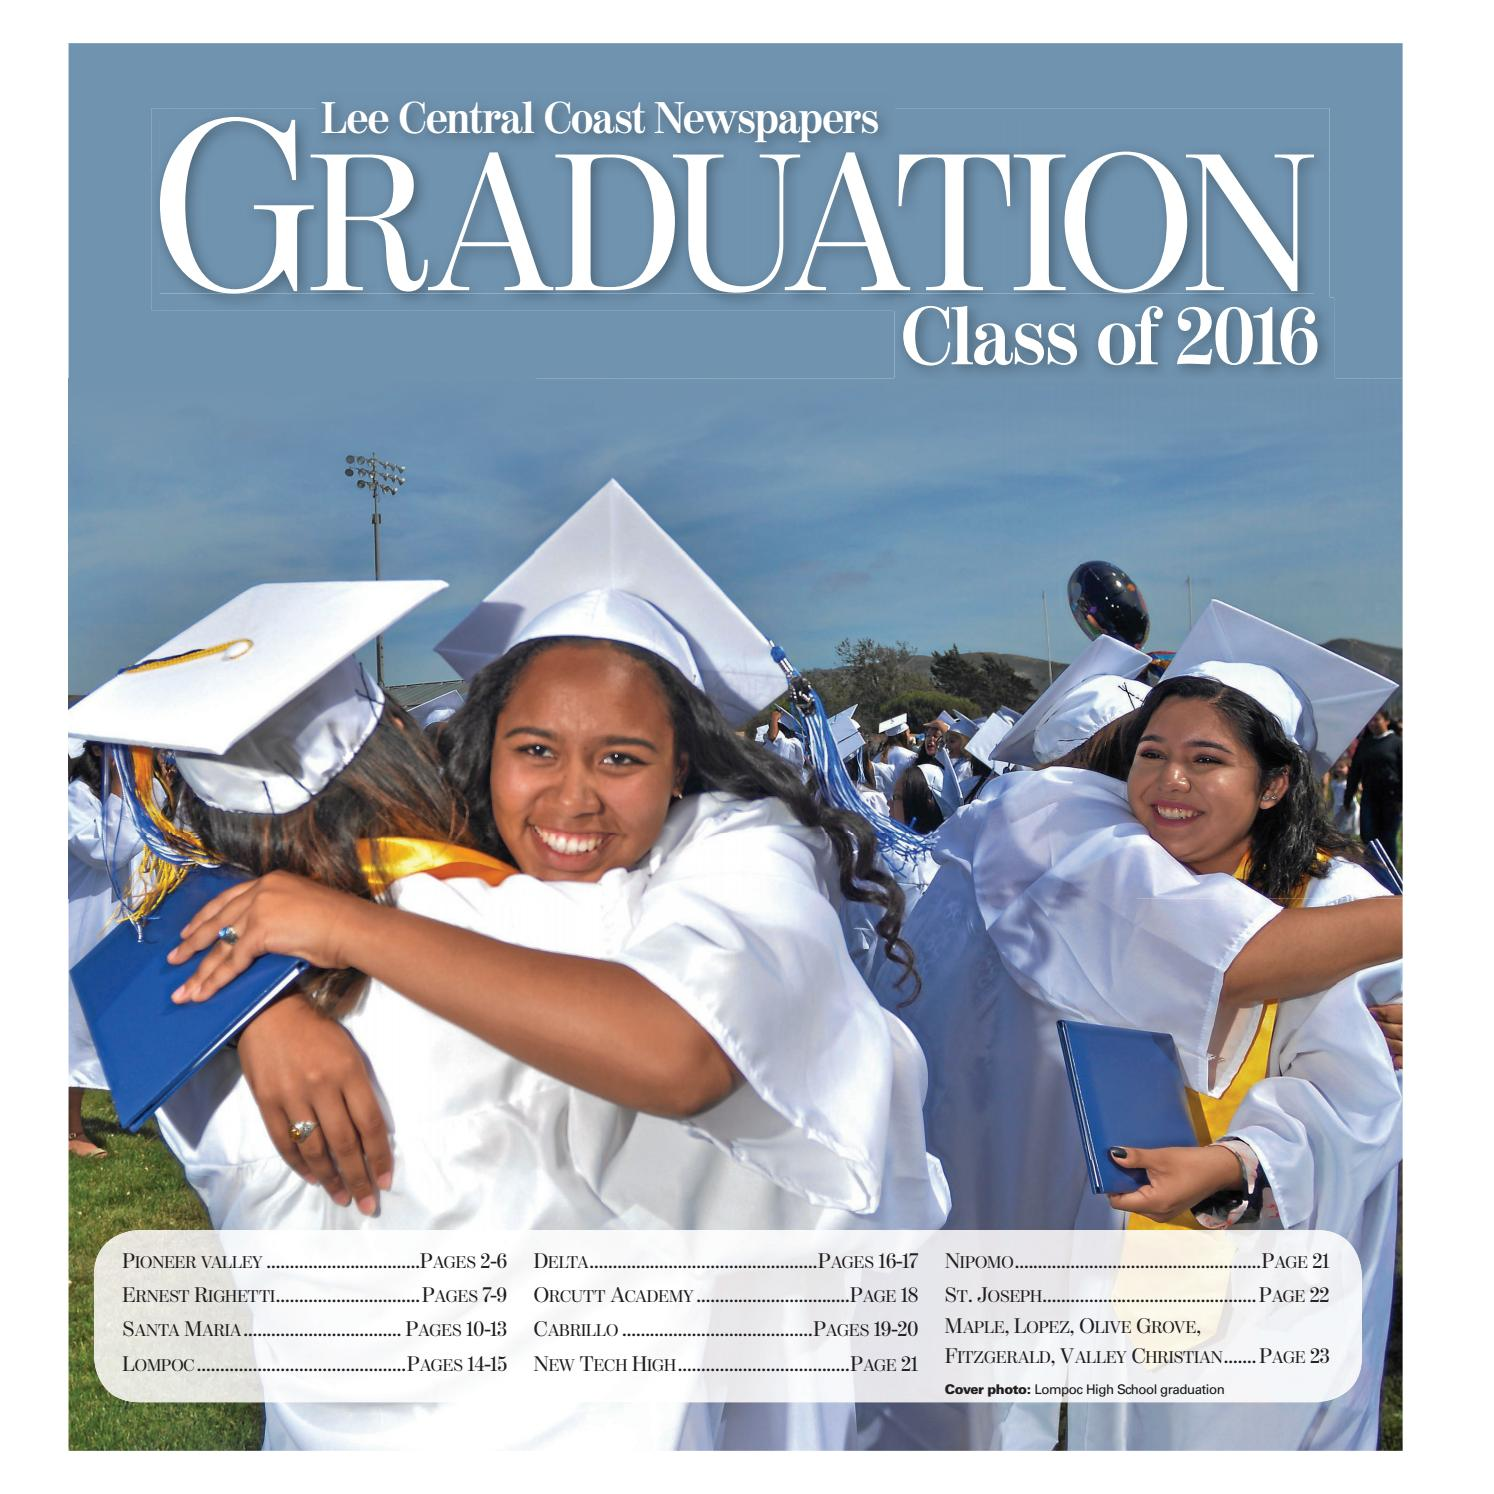 Graduation Class Of 2016 By Lee Central Coast Newspapers Issuu